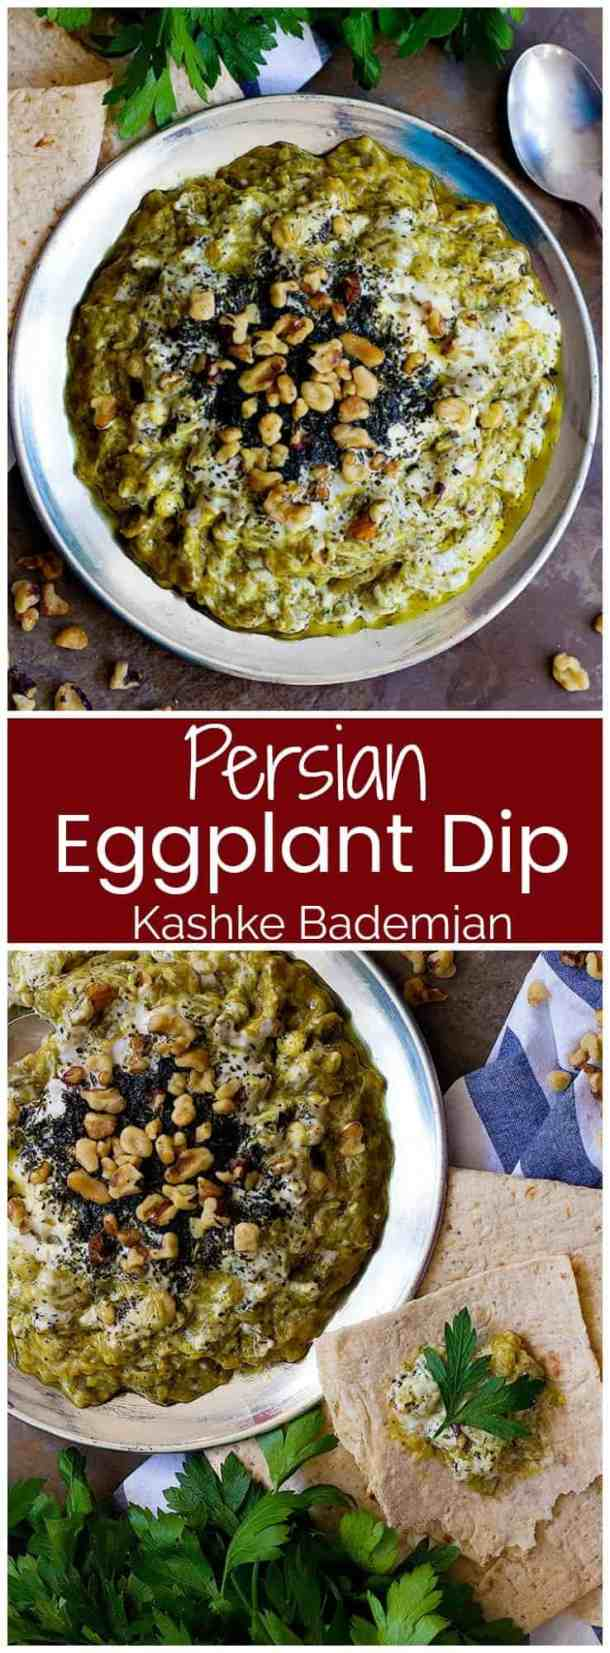 Kashke Bademjan is a simple Persian eggplant dip that is made with a handful of ingredients. This tasty vegetarian dip is full of amazing flavors and is the perfect appetizer for any table!